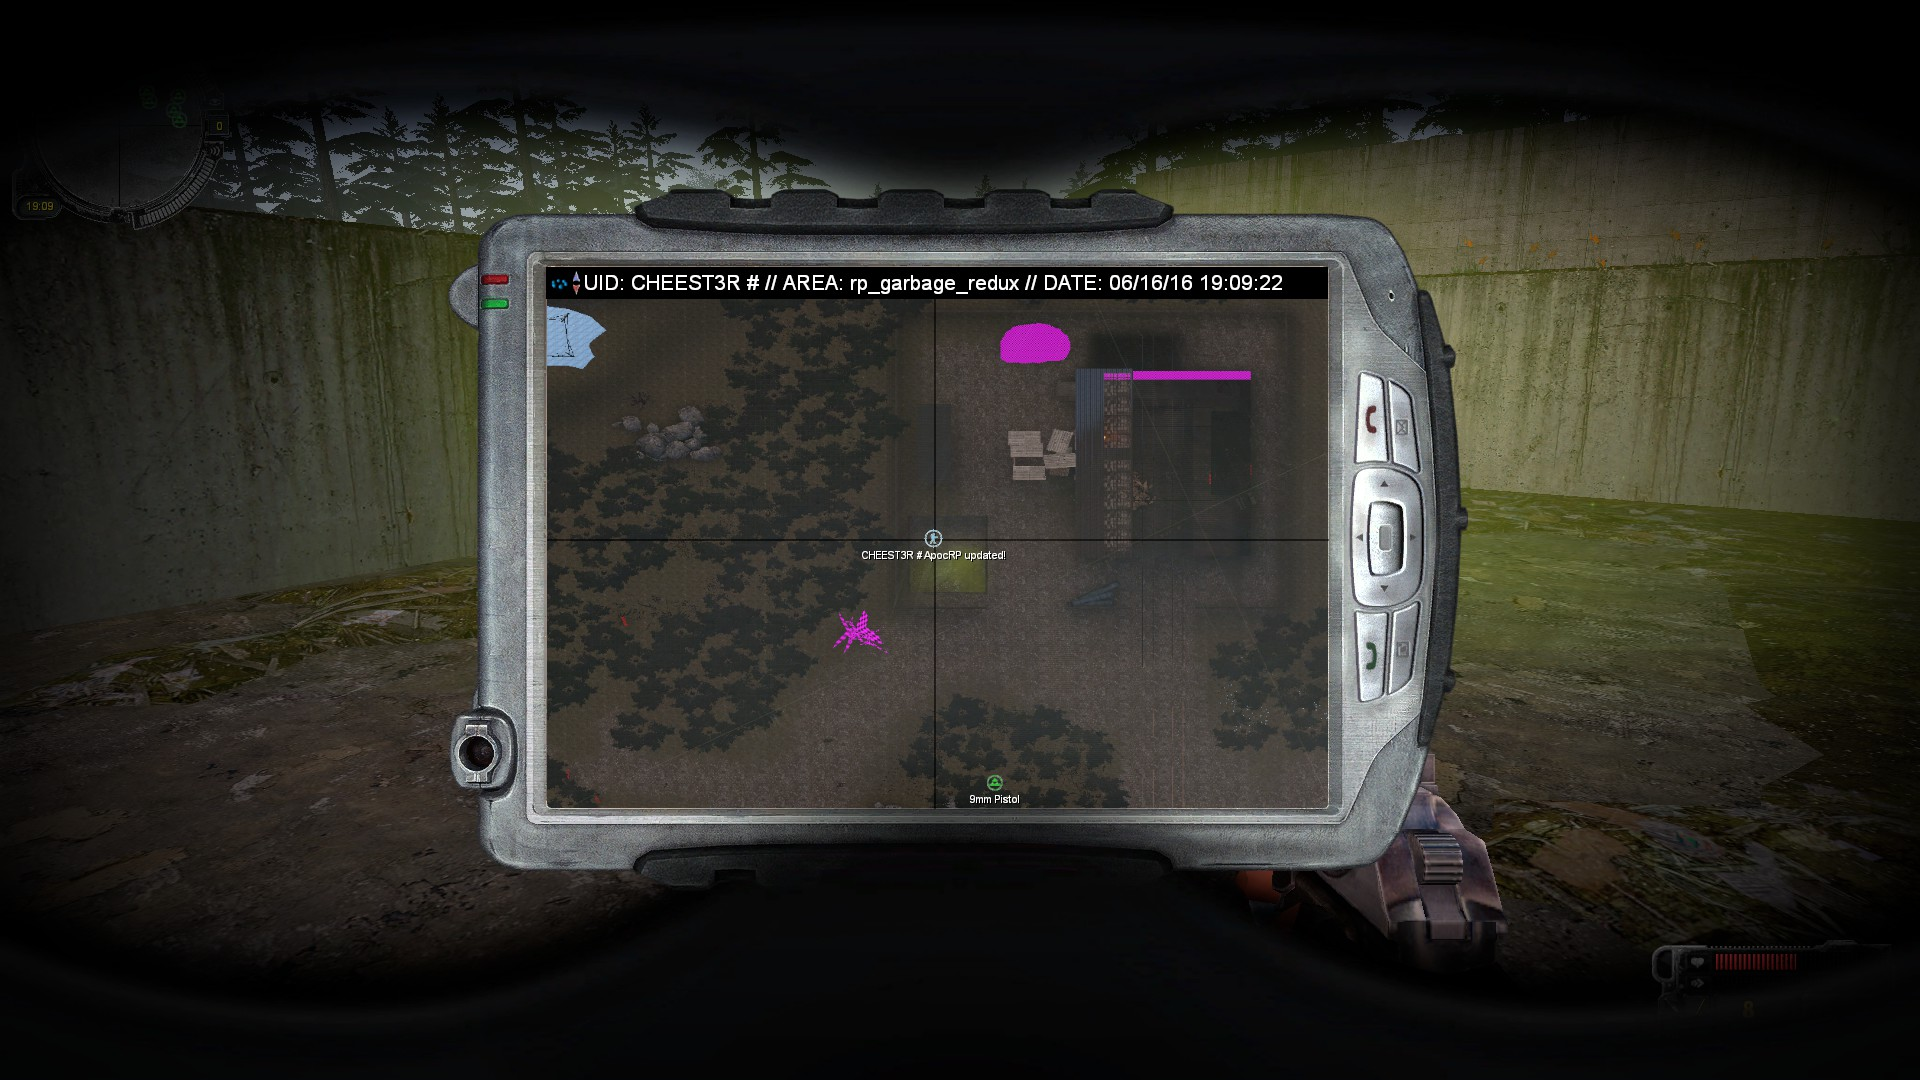 S.T.A.L.K.E.R. Serious Roleplay Project - Suggest or Support 51E70D0B7FD544CD1D3DCD7FCA76D33CE4D6667E